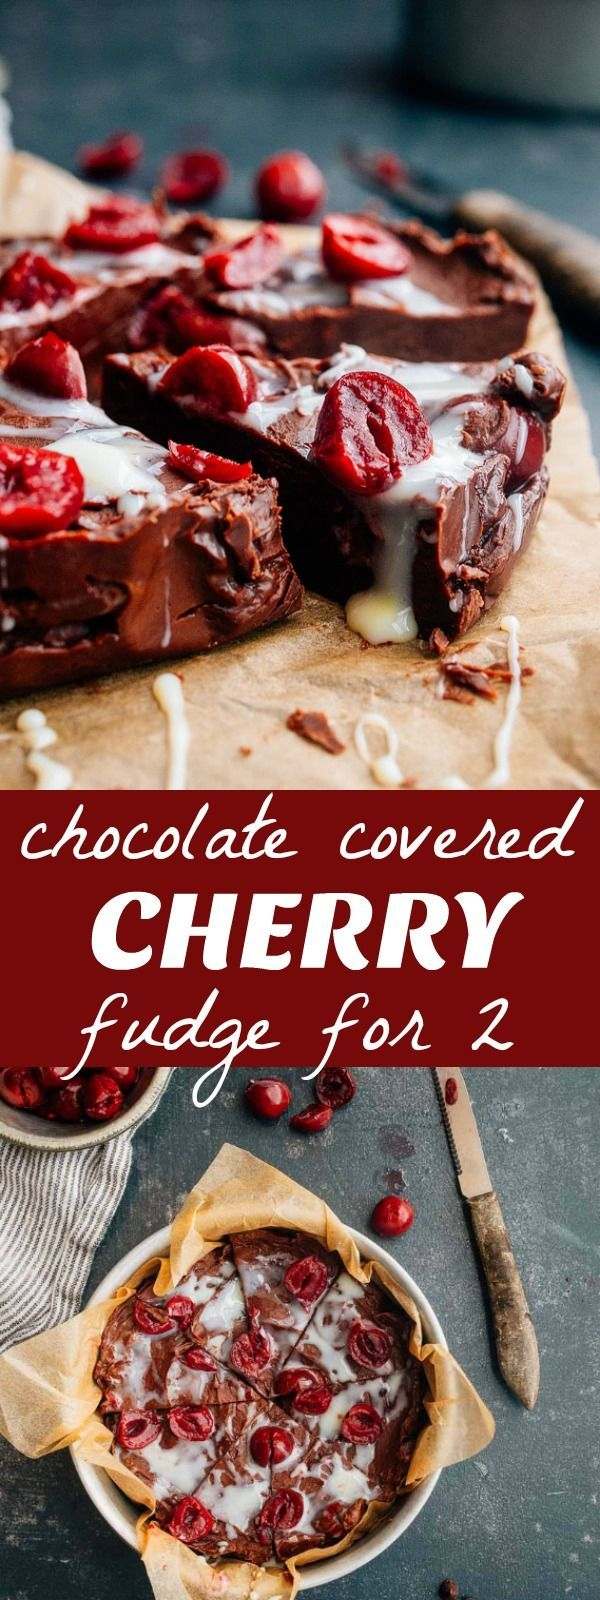 Chocolate cherry fudge for two. Small batch cherry cordial fudge made with sweetened condensed milk. Easy 3 ingredient fudge! #fudge #christmas #baking @EagleBrand via @dessertfortwo